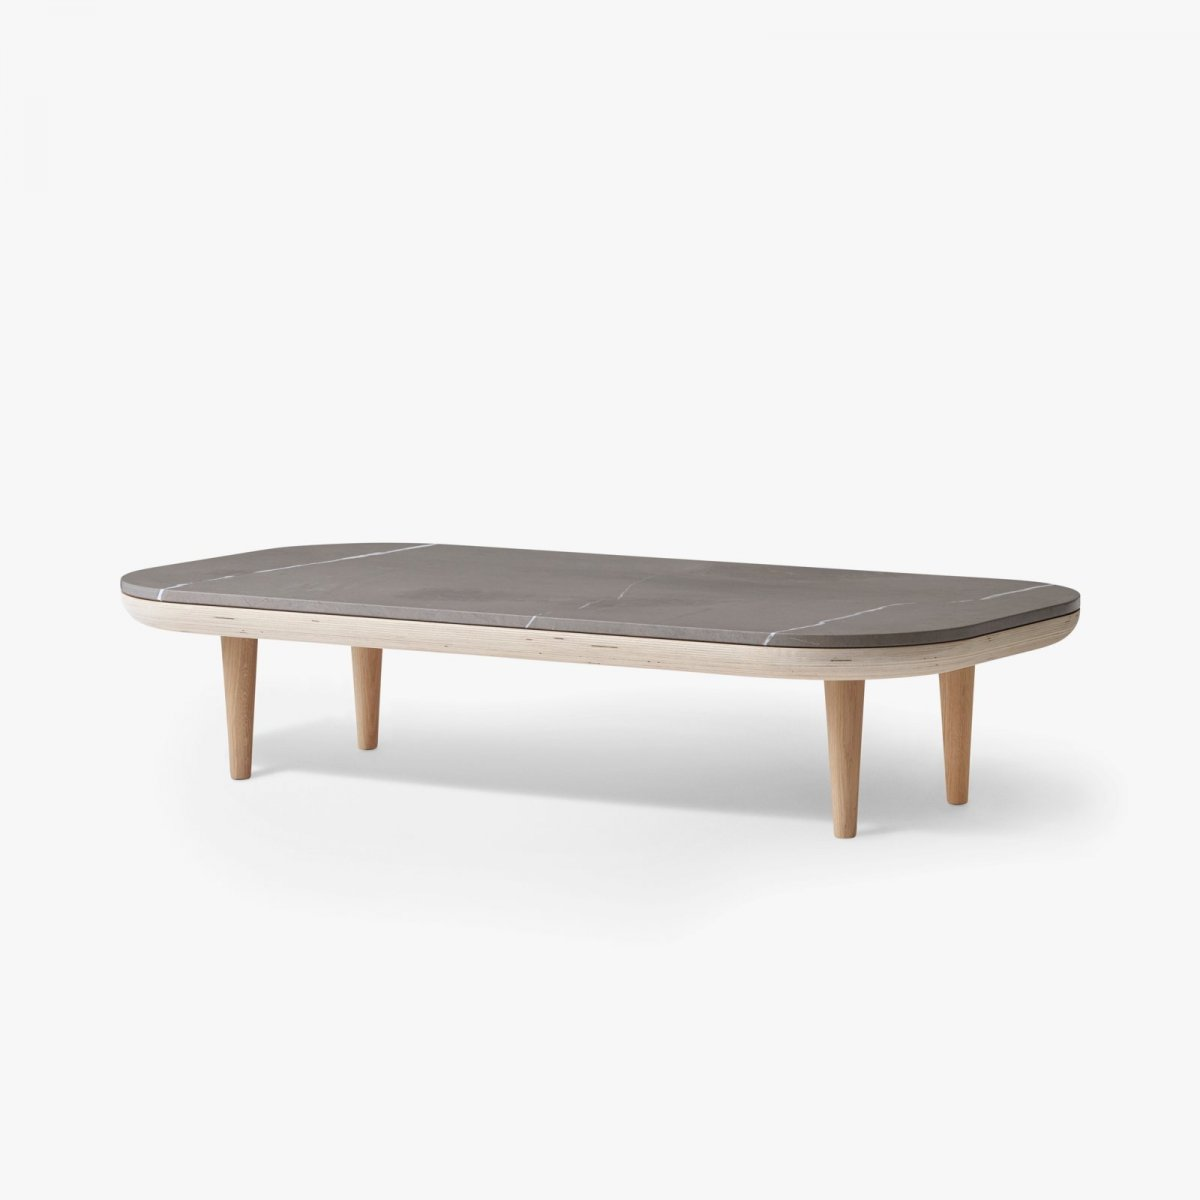 Fly Table SC5, white oiled oak frame with honed Pietra di Fossena marble top.